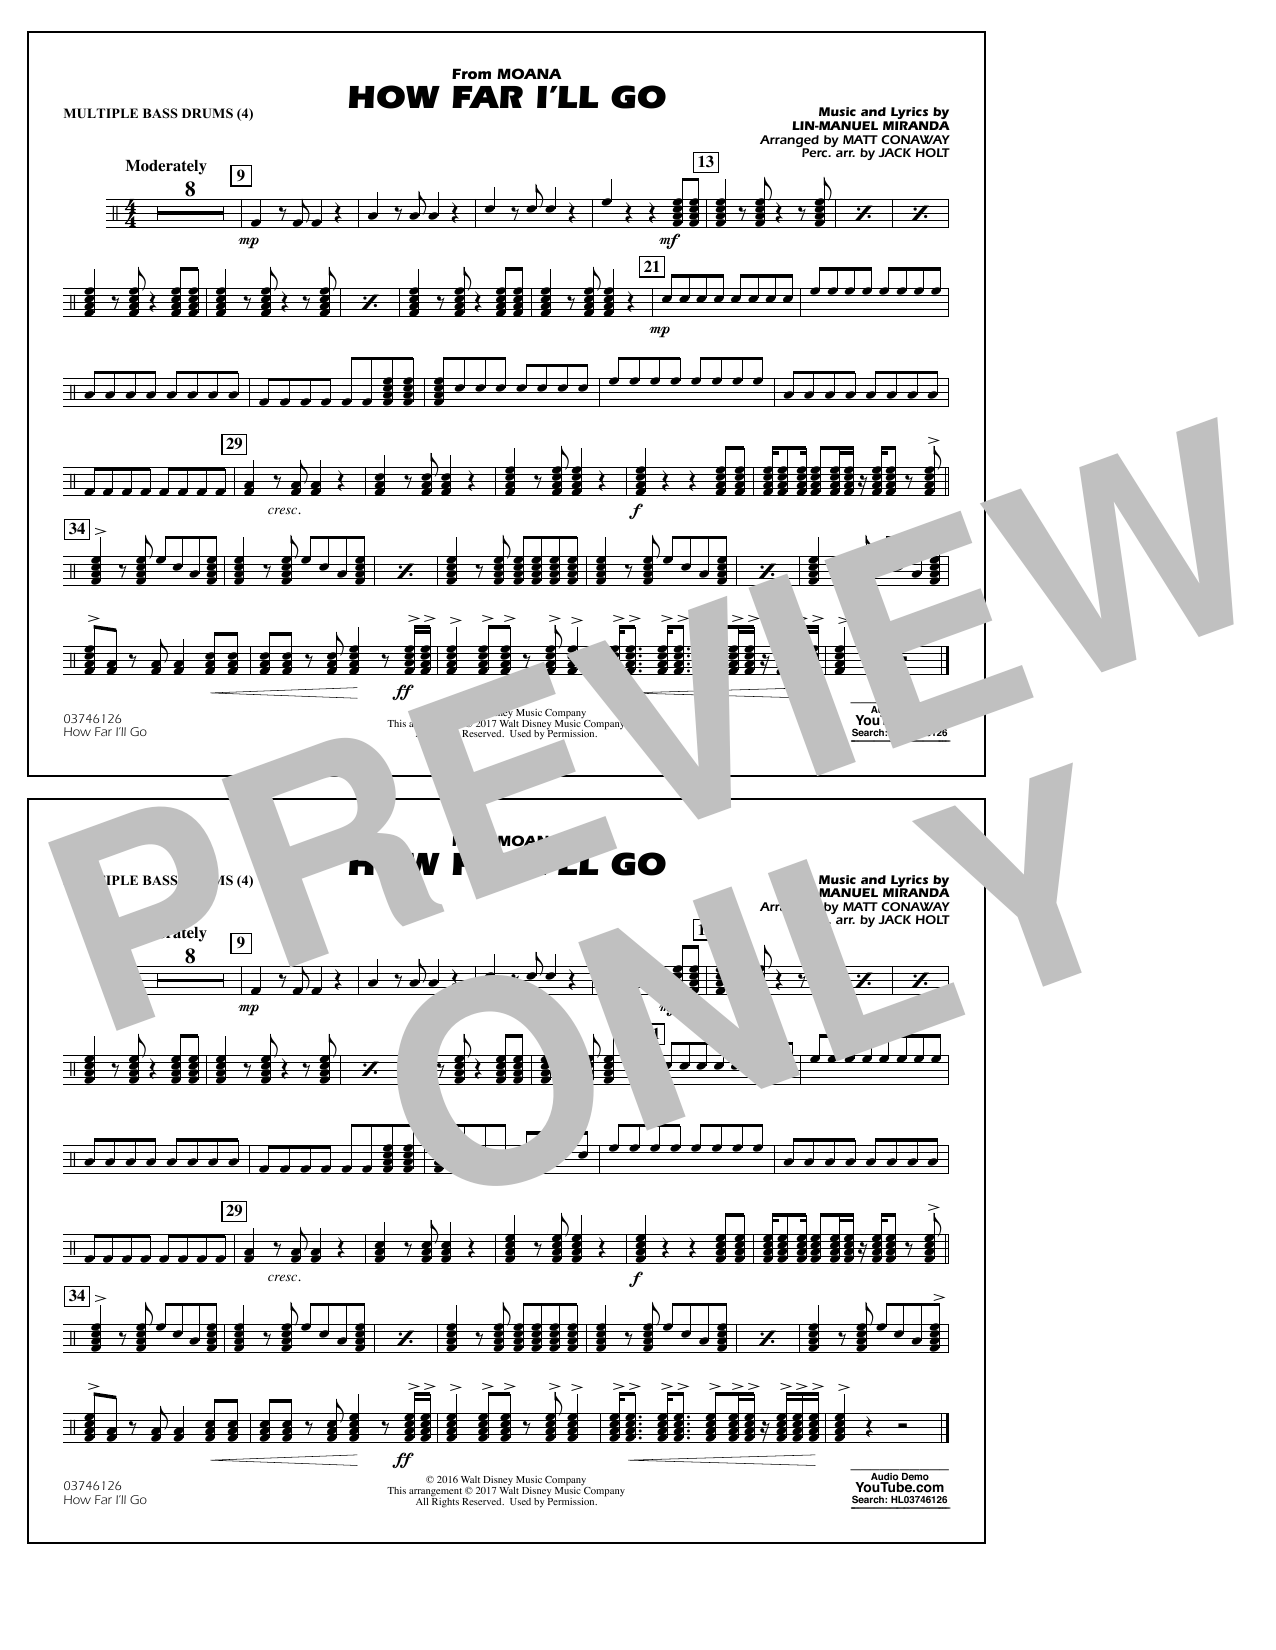 How Far I'll Go (from Moana) - Multiple Bass Drums Sheet Music